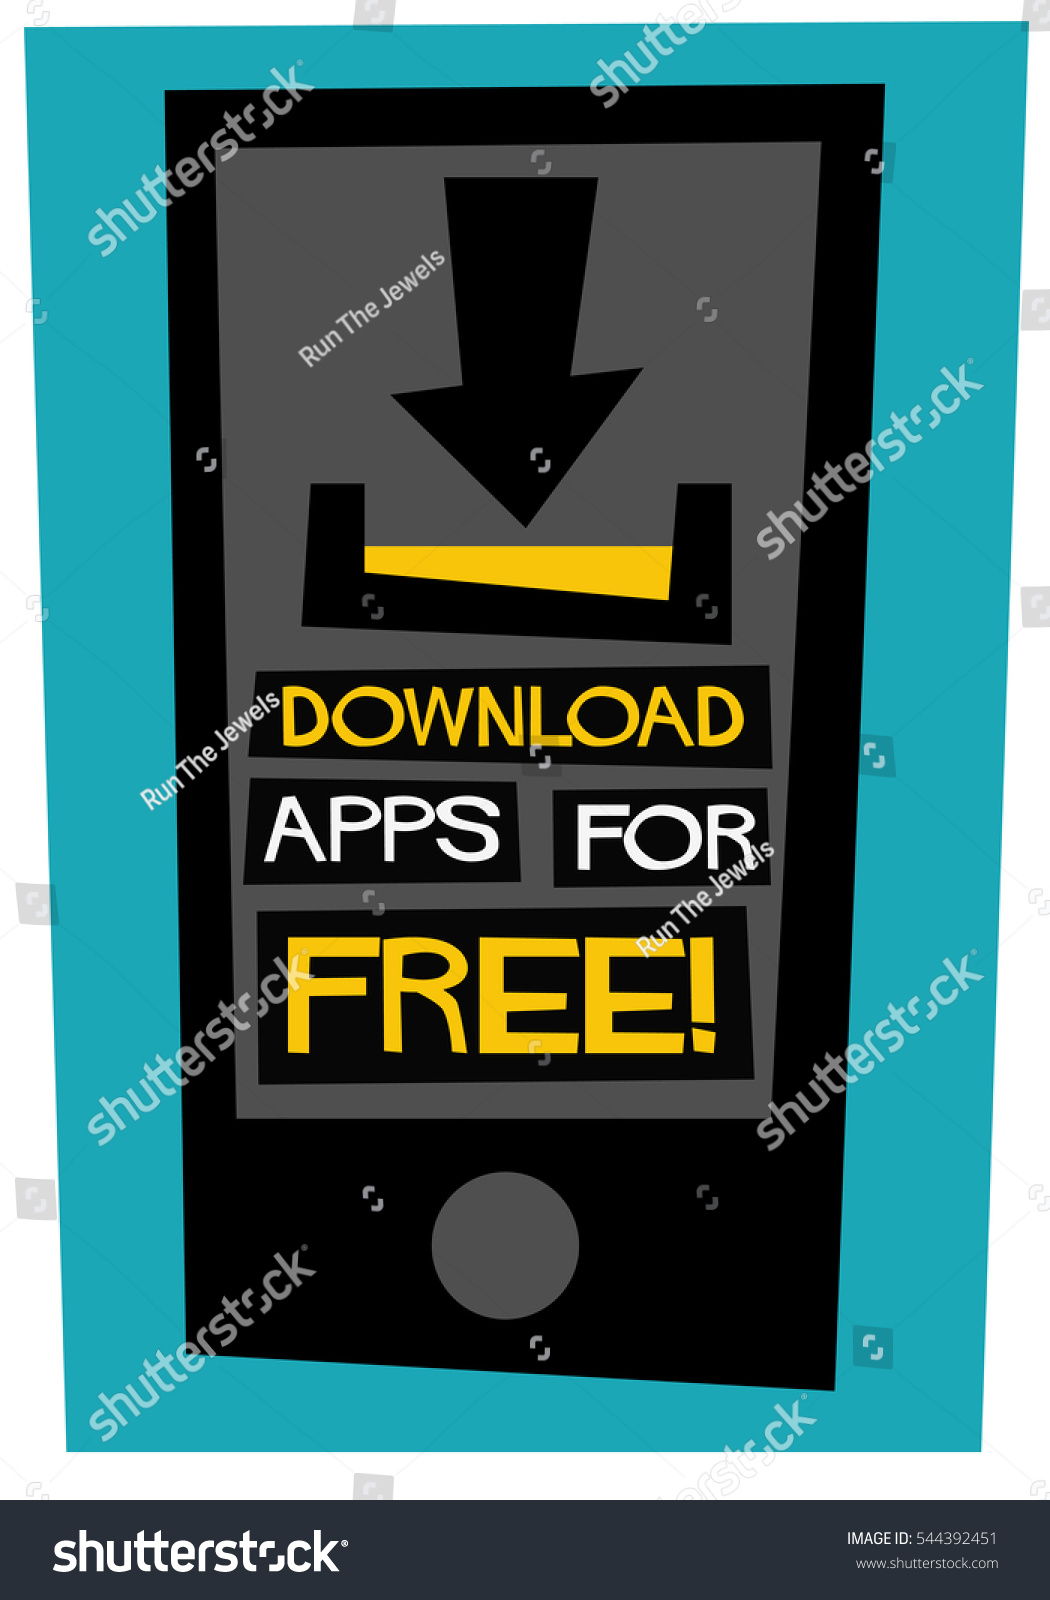 Poster design vector download - Download Apps For Free Flat Style Vector Illustration Quote Poster Design